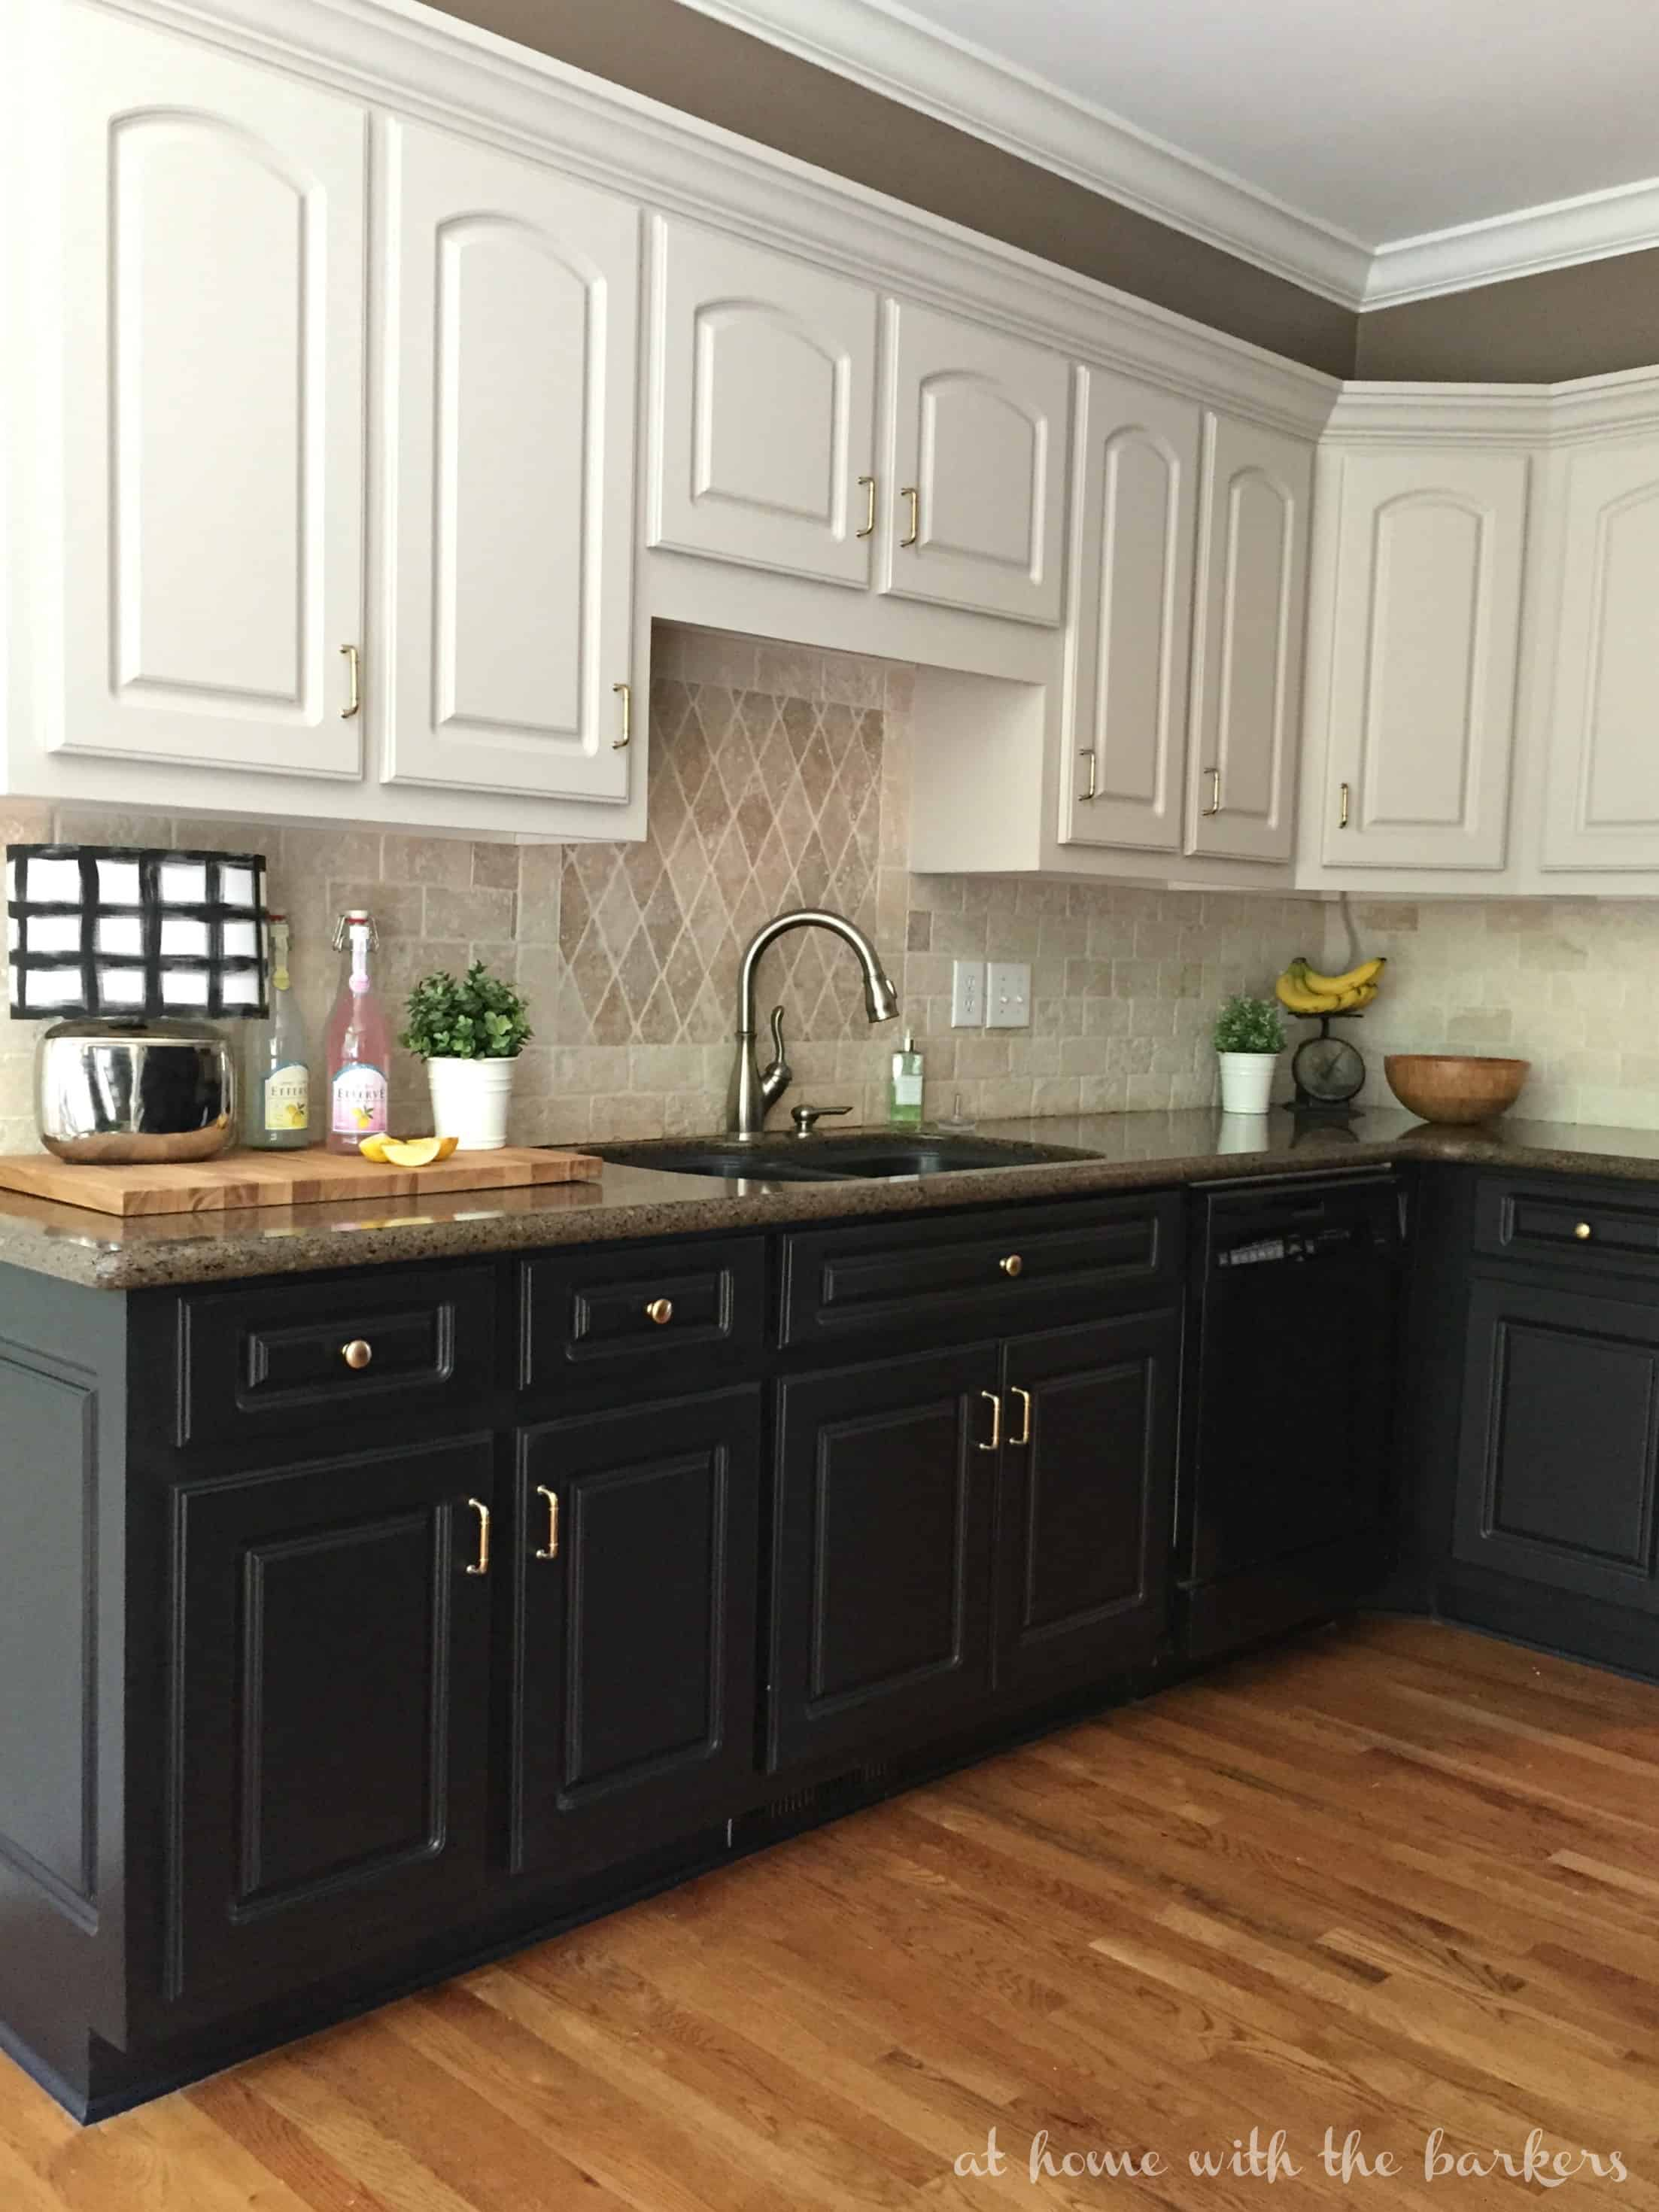 Do You Stain The Inside Of Kitchen Cabinets